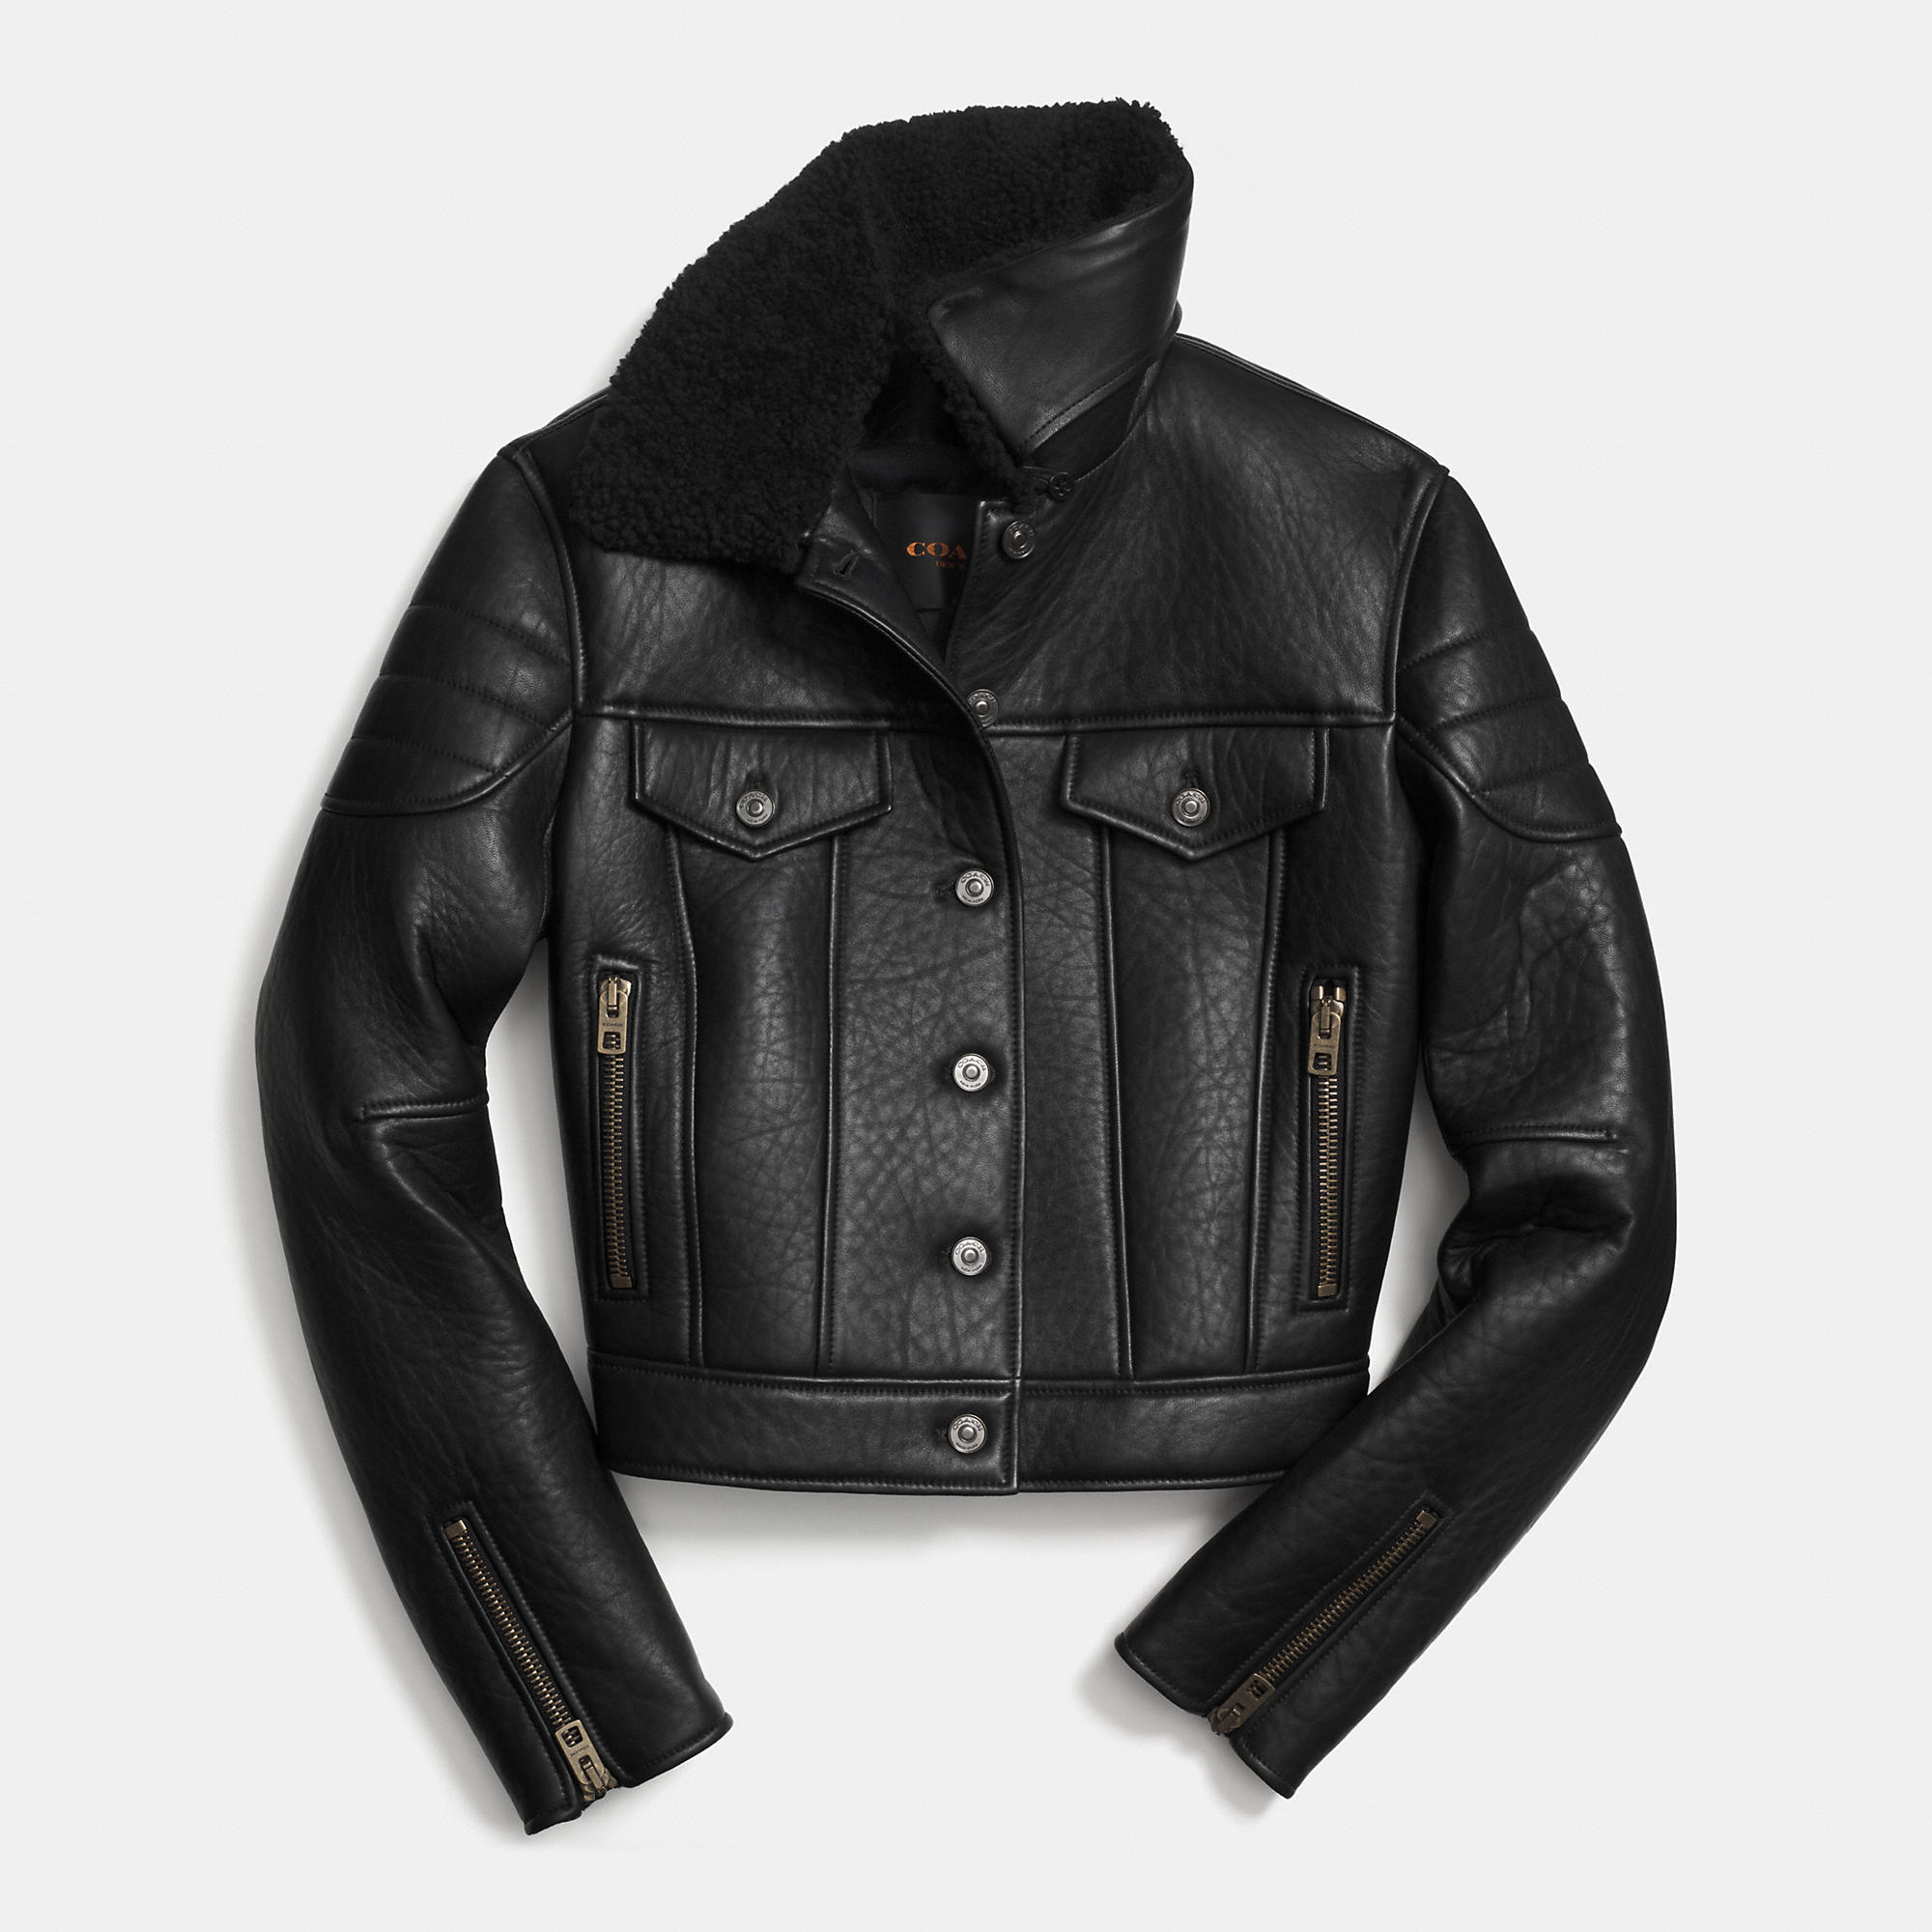 Coach Leather Biker Jacket | Fancy Friday – Coach Fall 2014 Collection